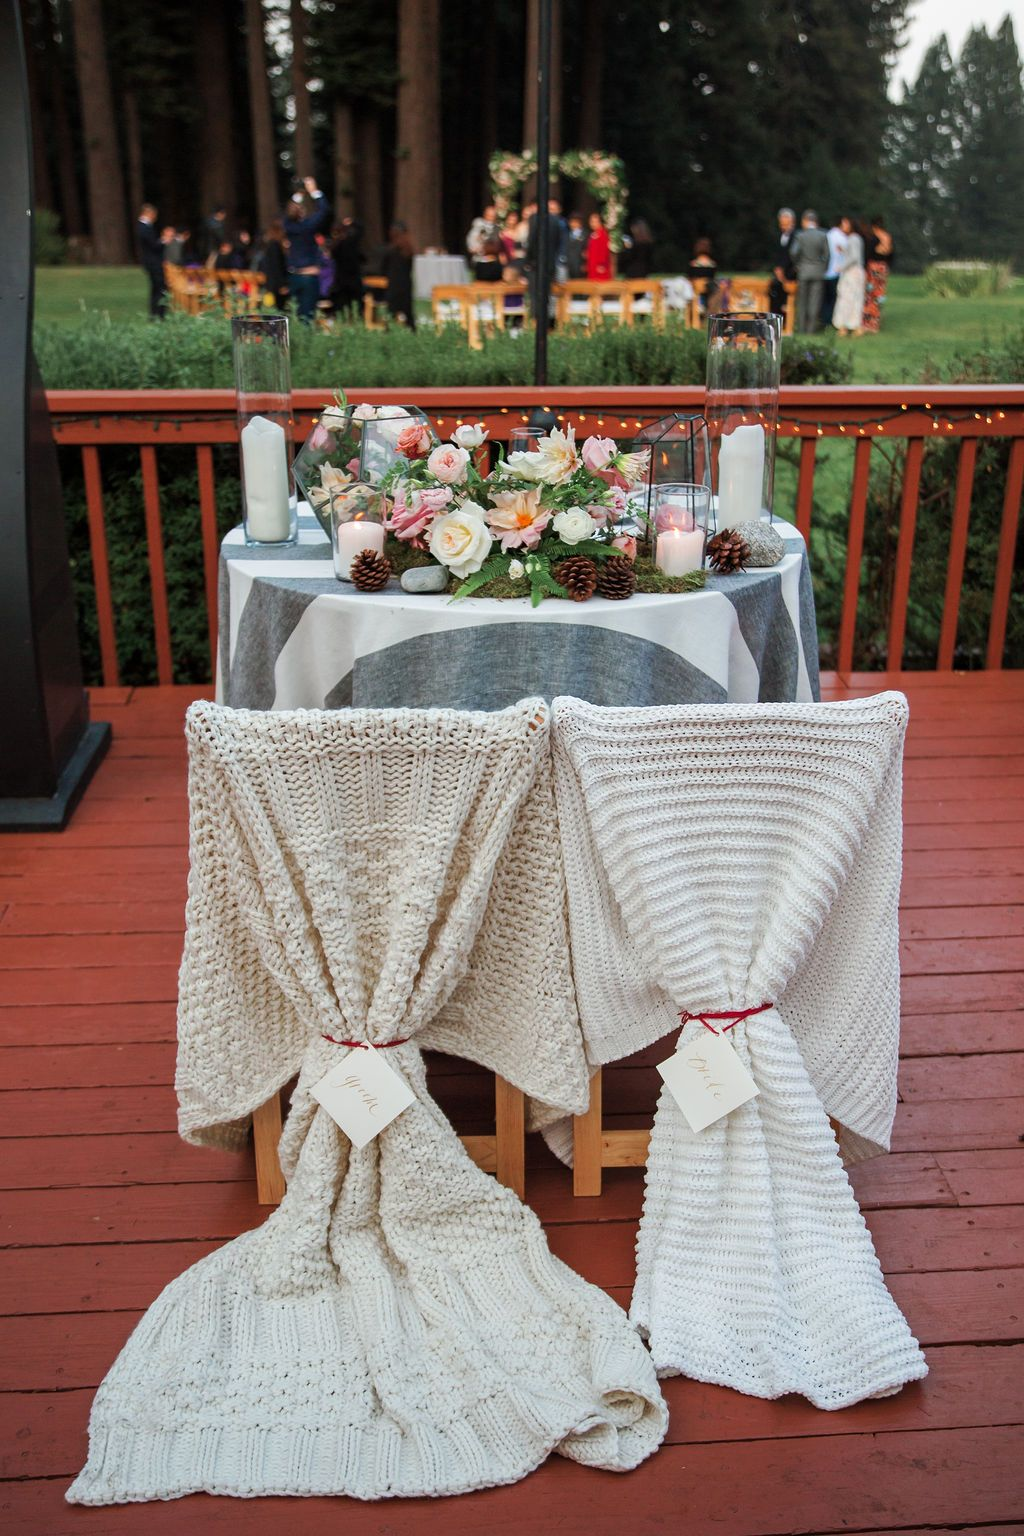 Blanket Couple's Chairs Decorations at The Mountain